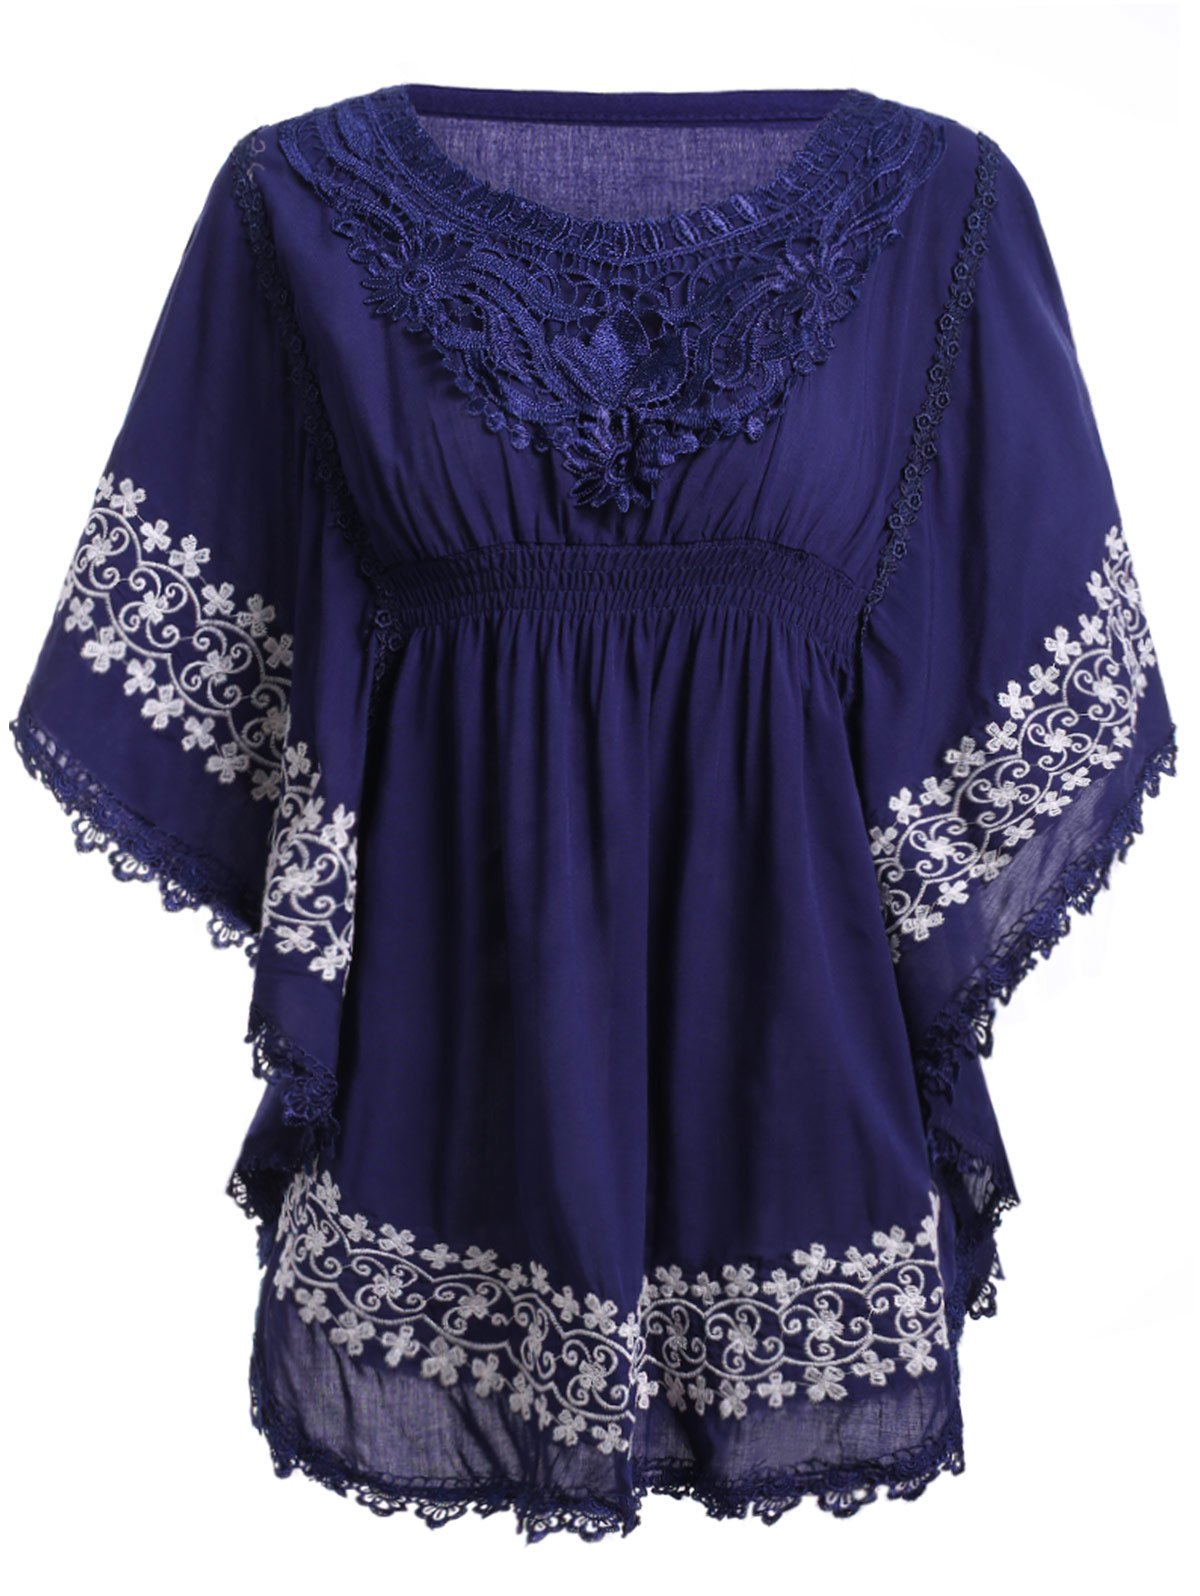 Ethnic Style Women's Round Neck Embroidery Lace Batwing Sleeve Blouse